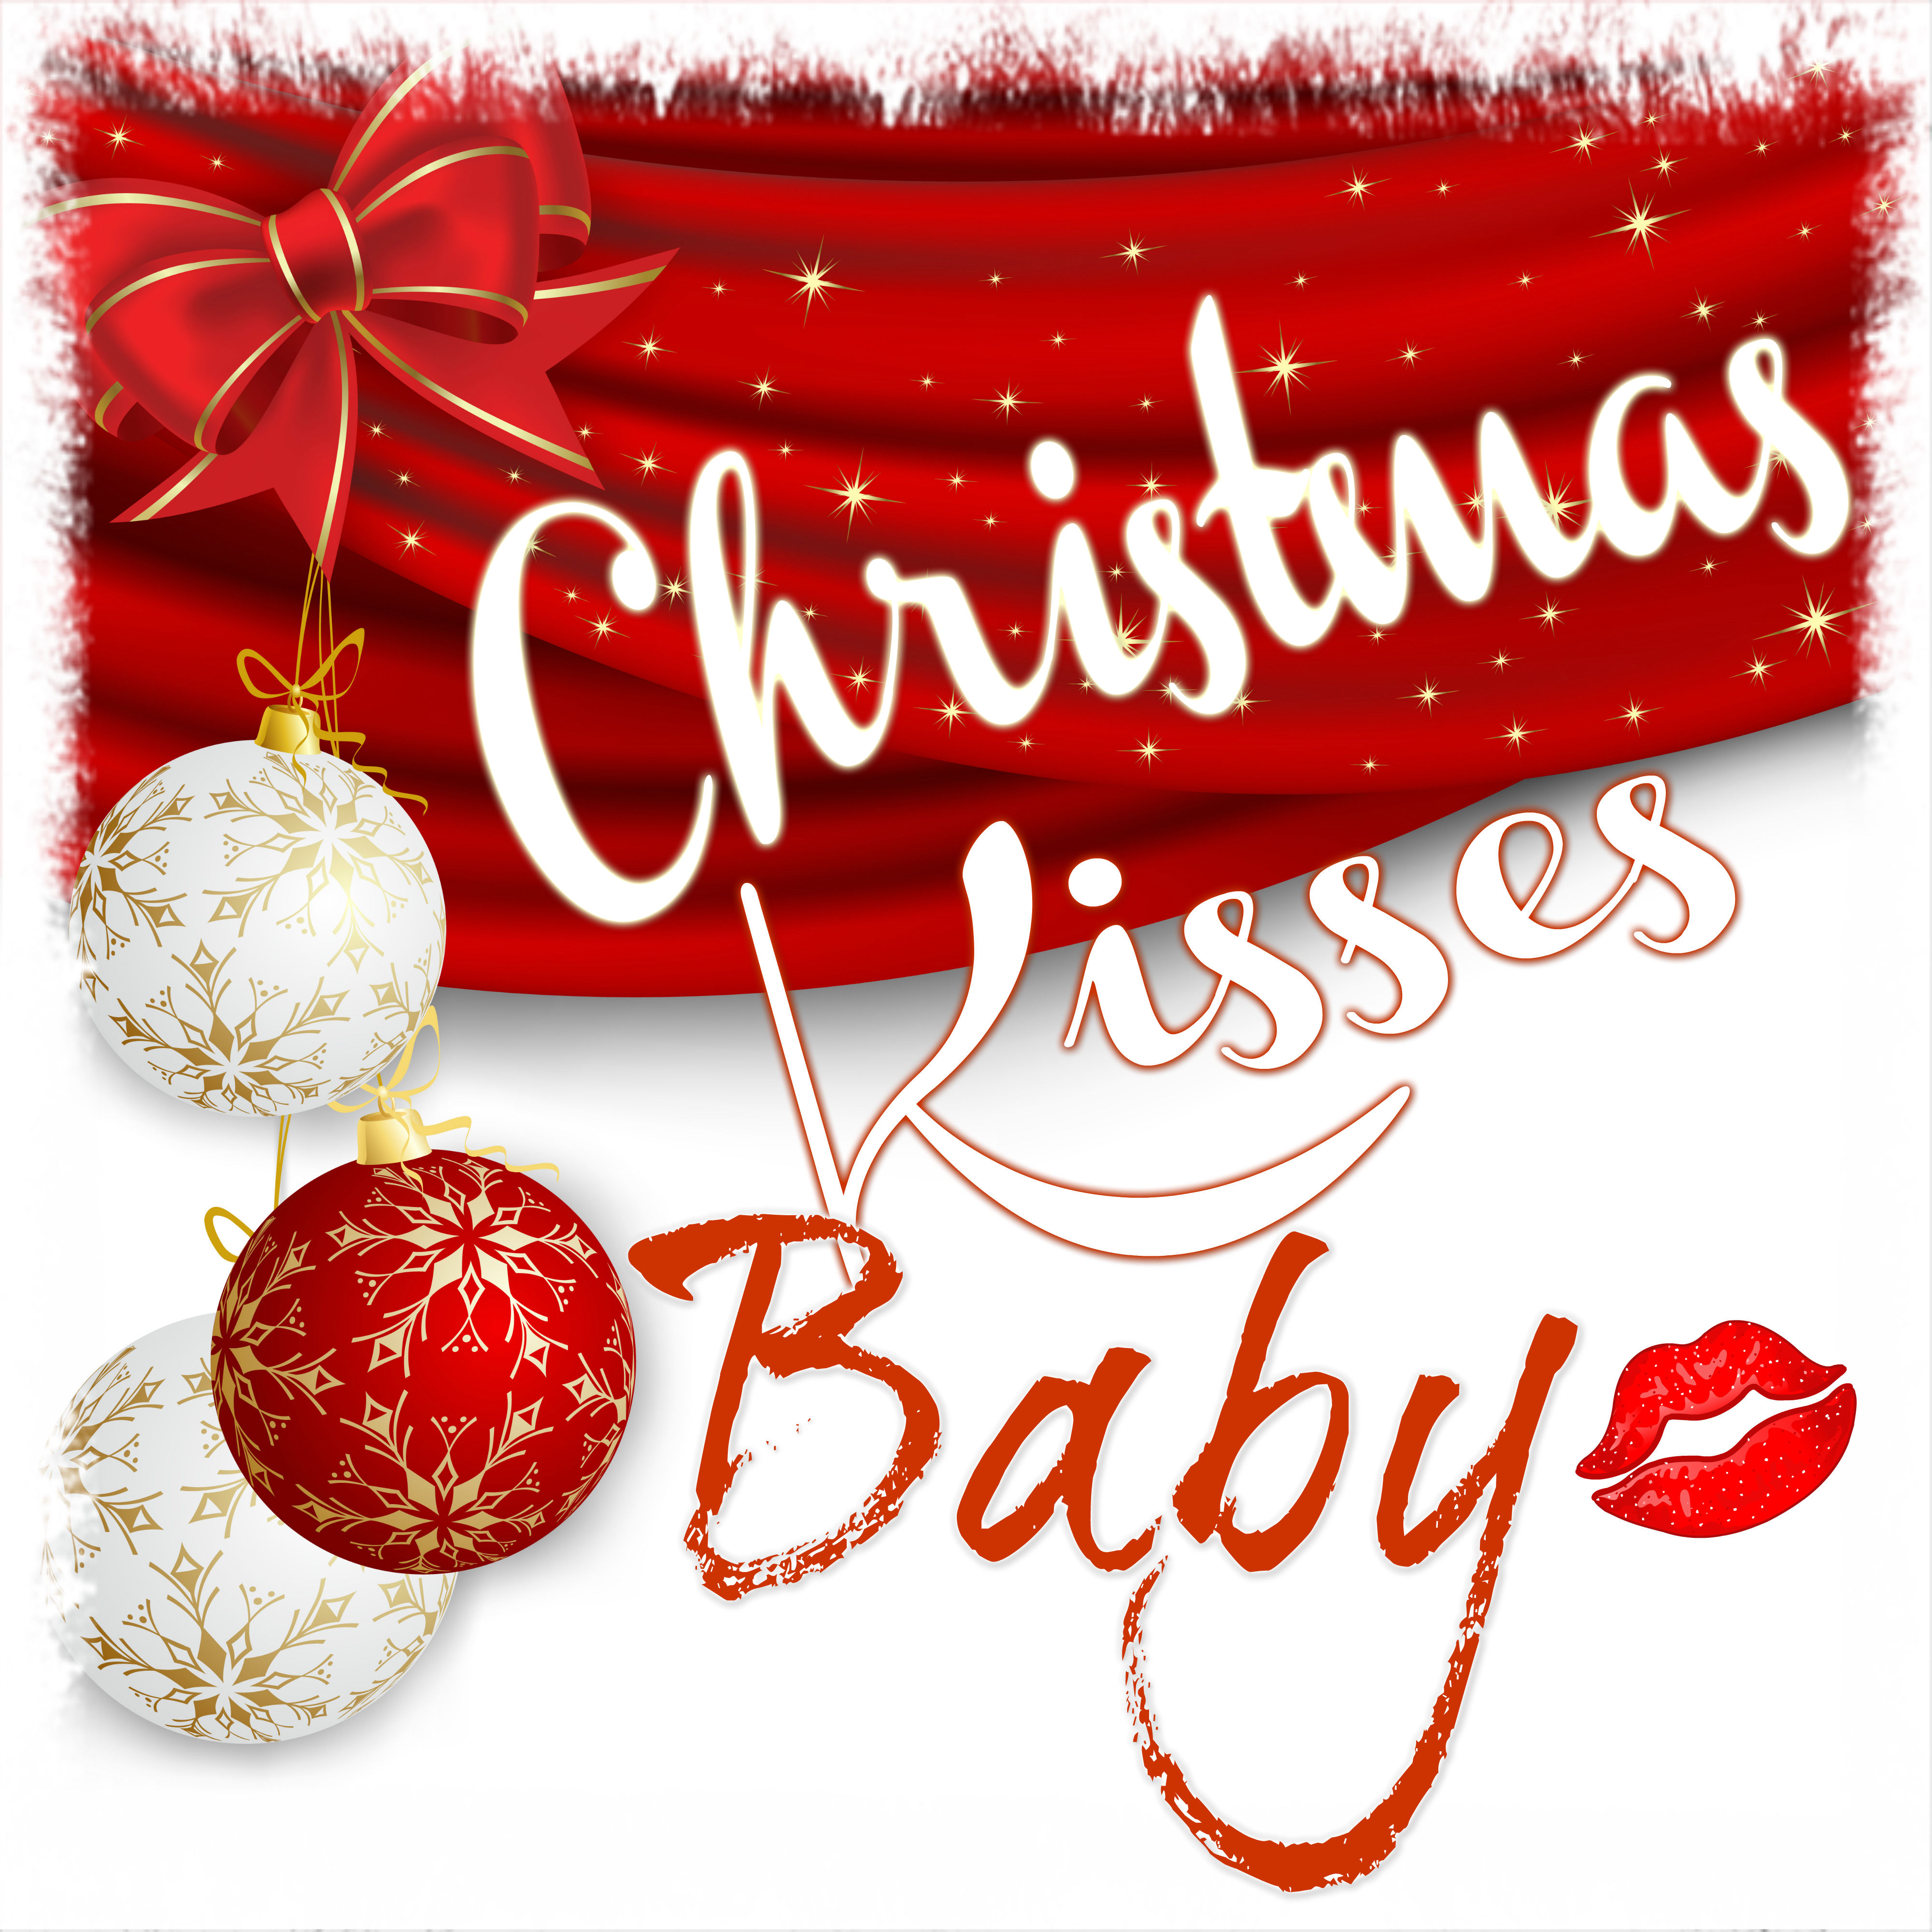 Christmas Kisses Pictures Photos And Images For Facebook